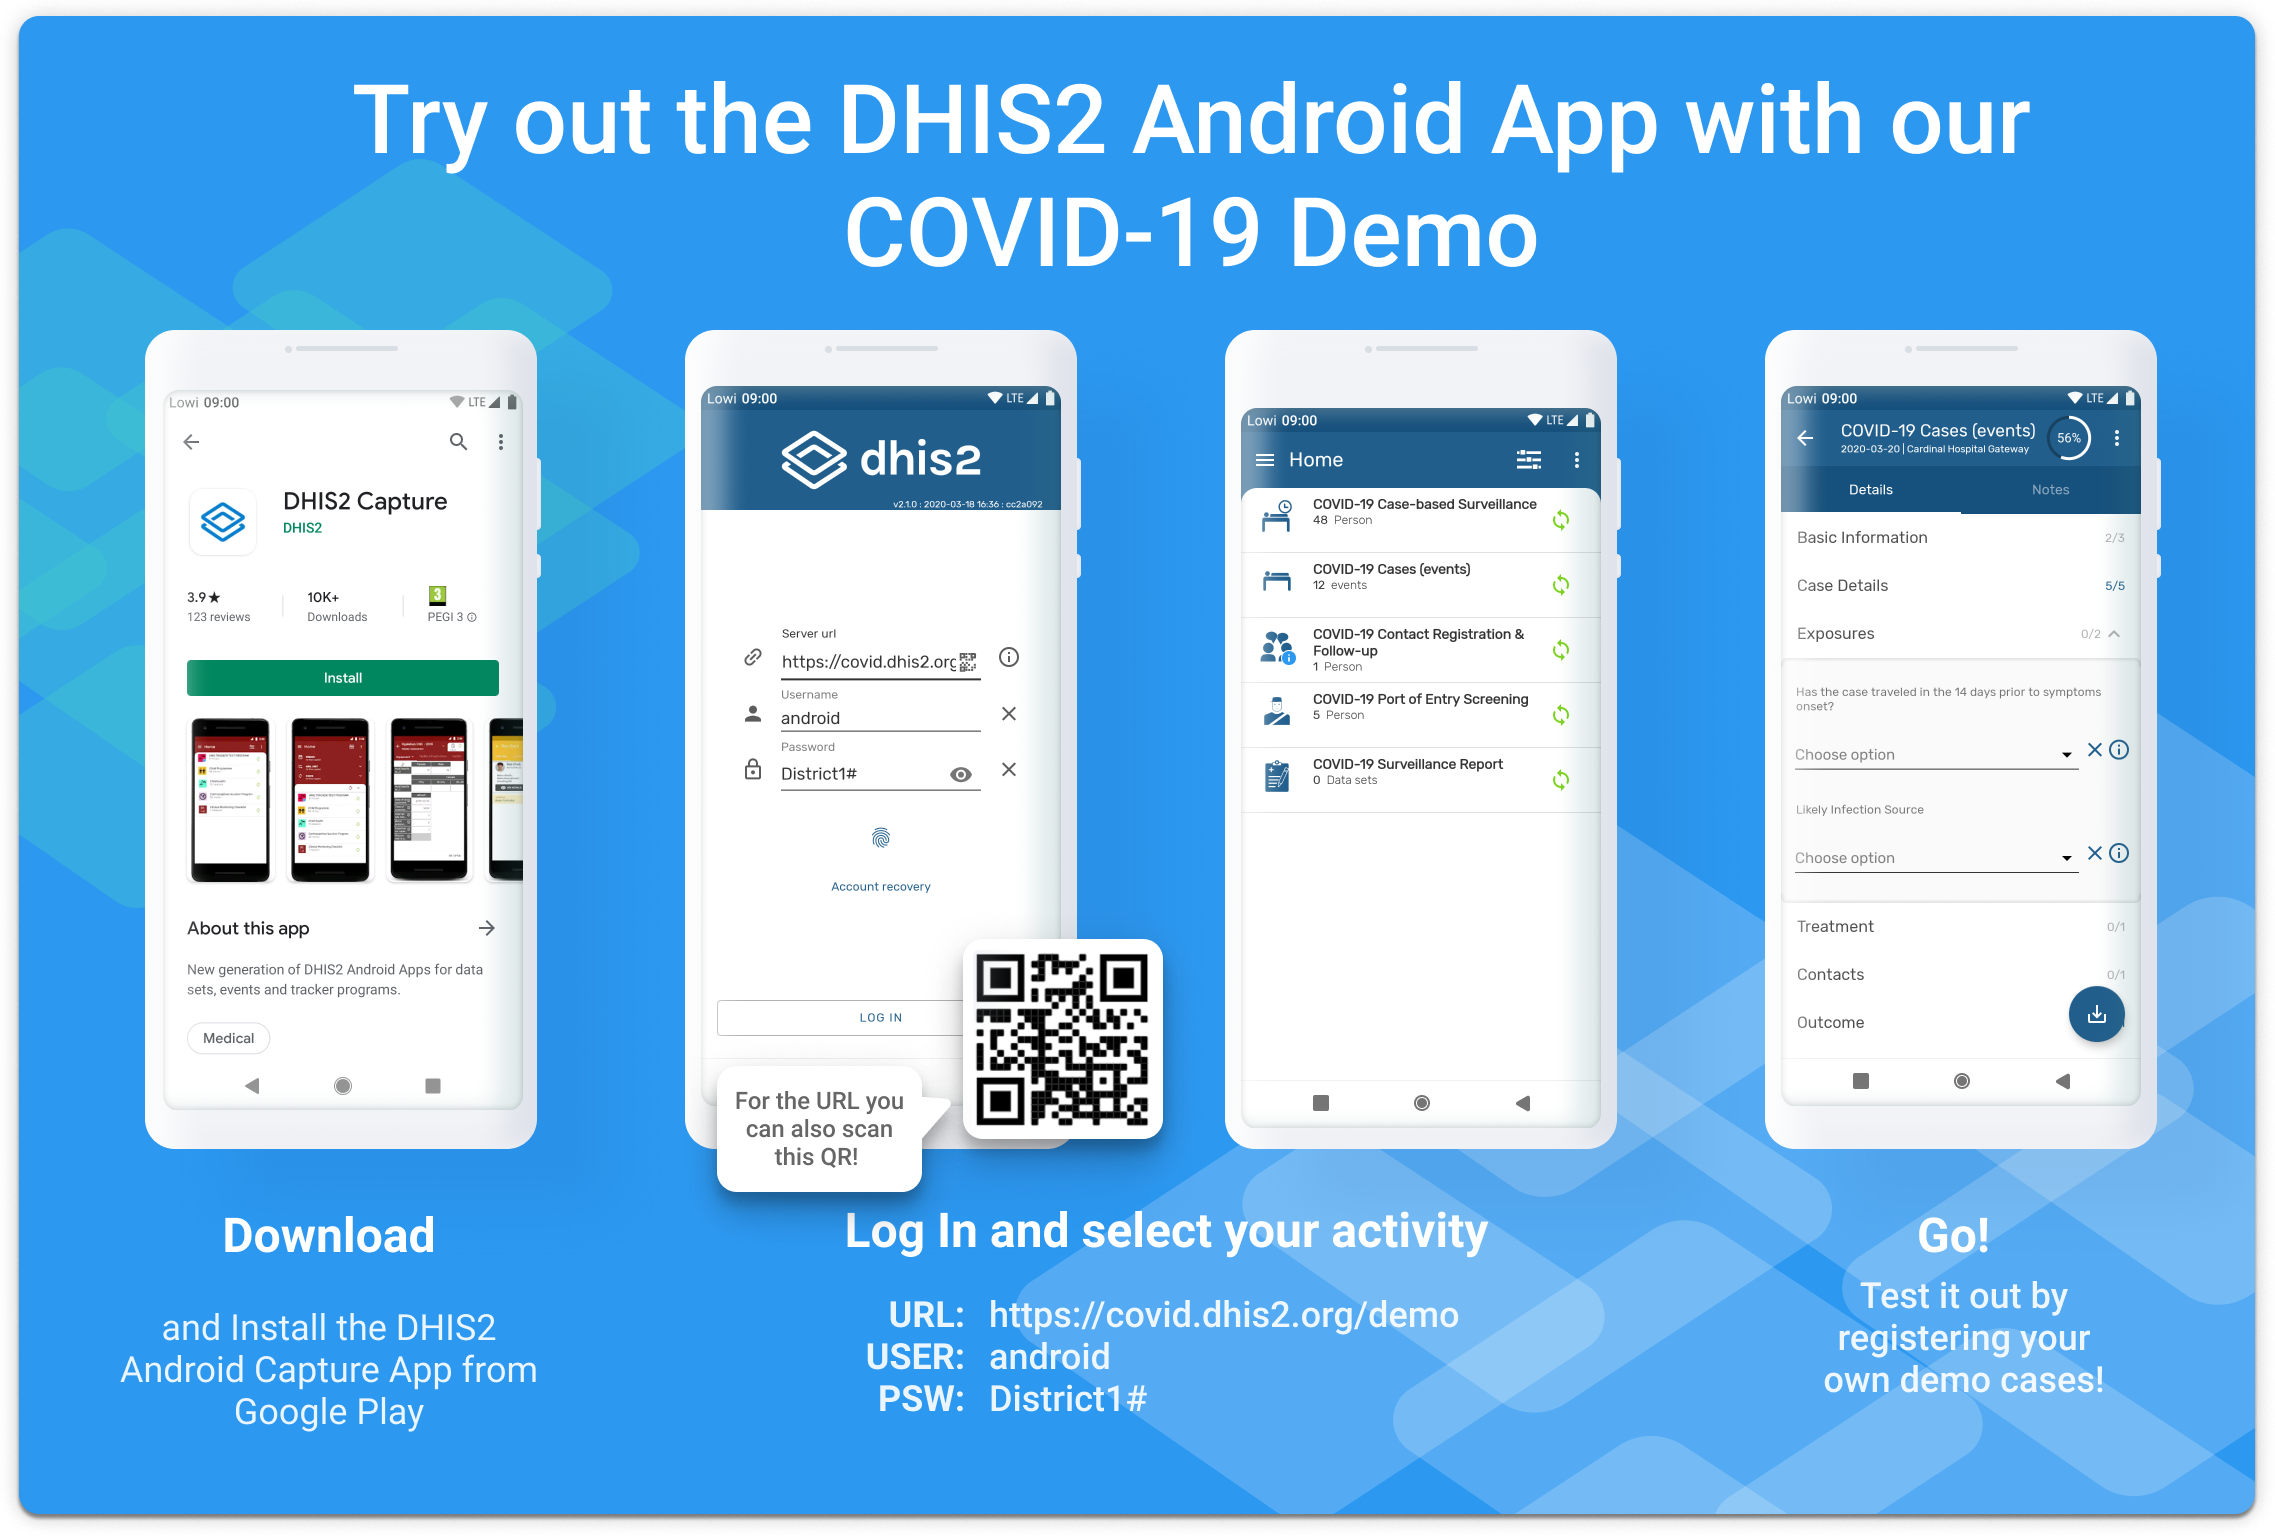 How to test DHIS2 the Covid-19 demo on Android